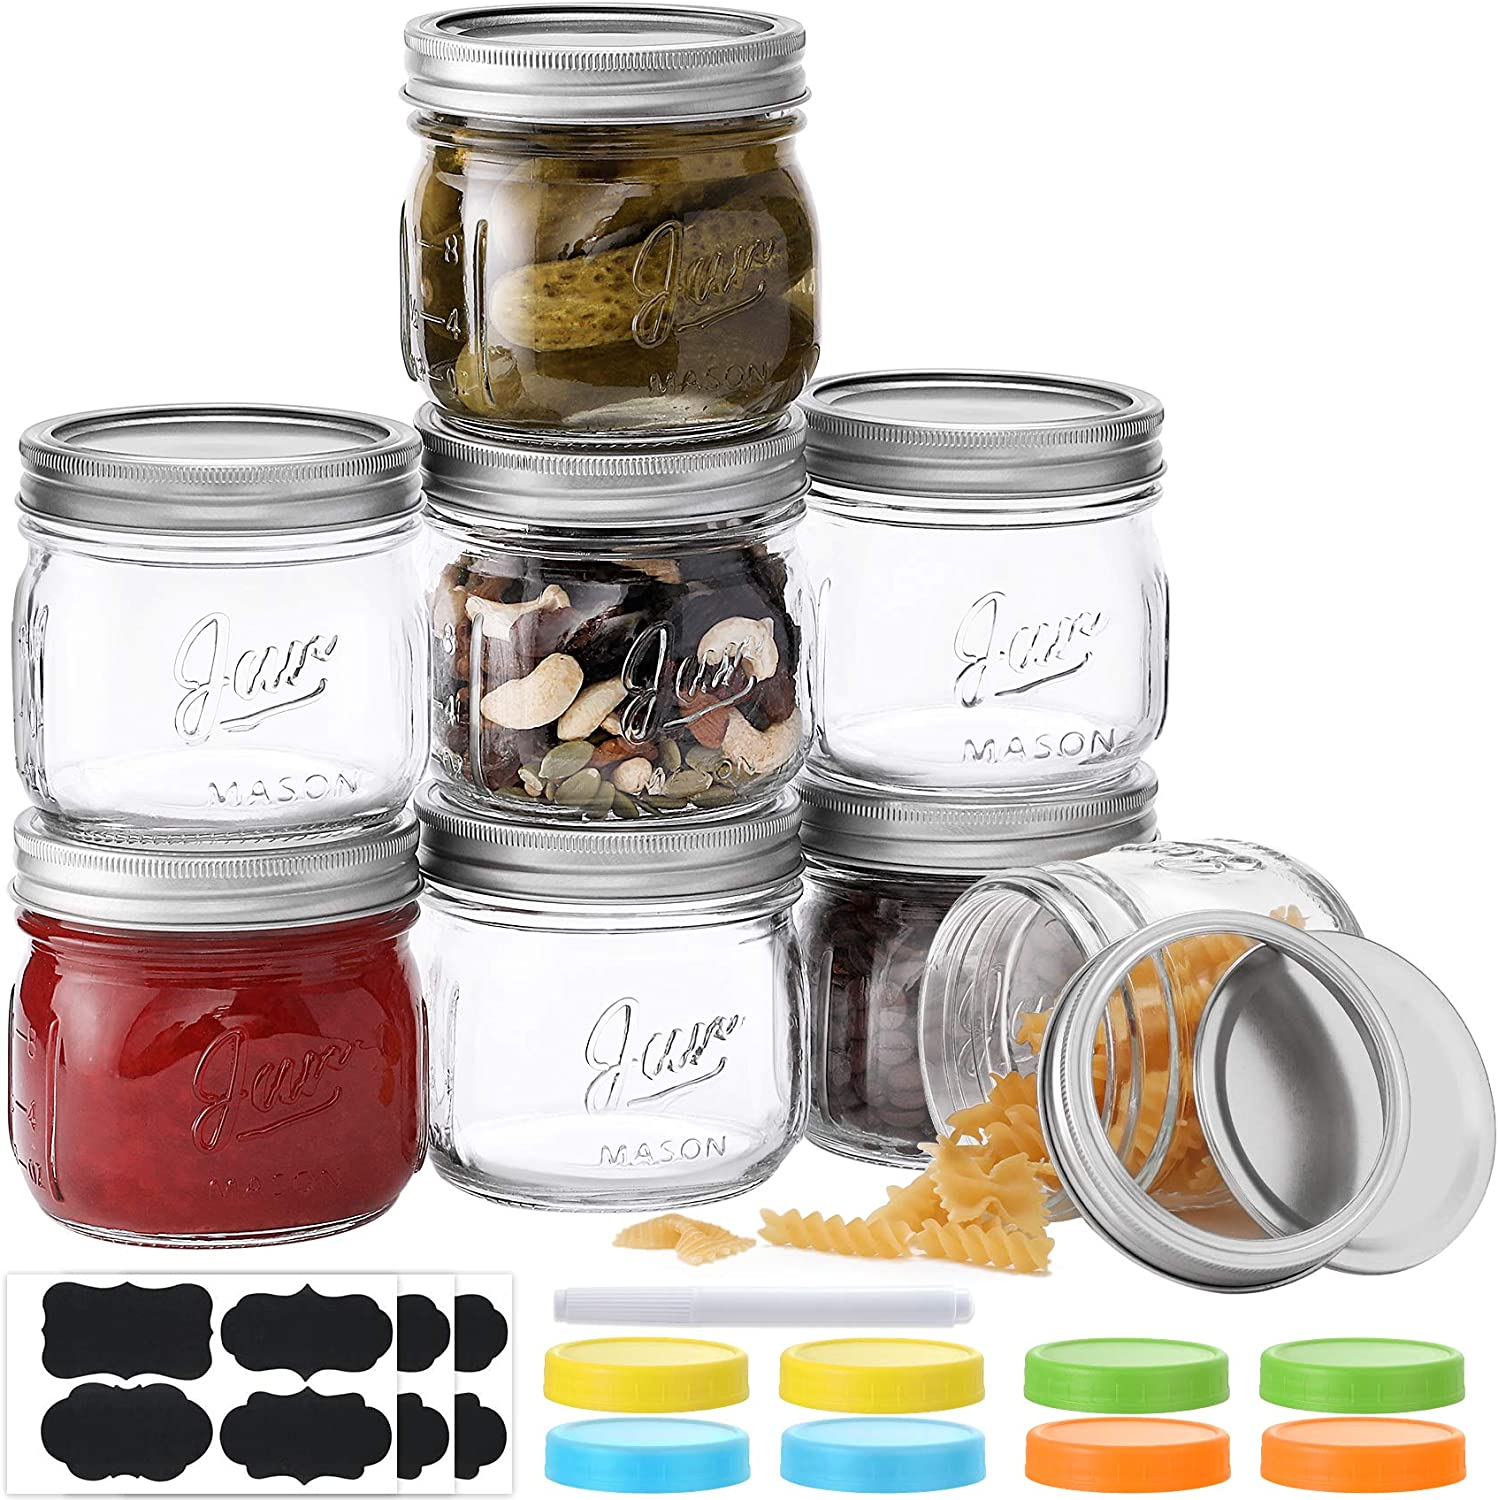 Wide Mouth Mason Jars 12 oz, 8 PACK Glass Canning Jars with Metal Airtight Lids, Leak-Proof Colored Lids, Chalkboard Labels and Marker, for Meal Prep, Food Storage, Canning, Preserving, DIY Projects